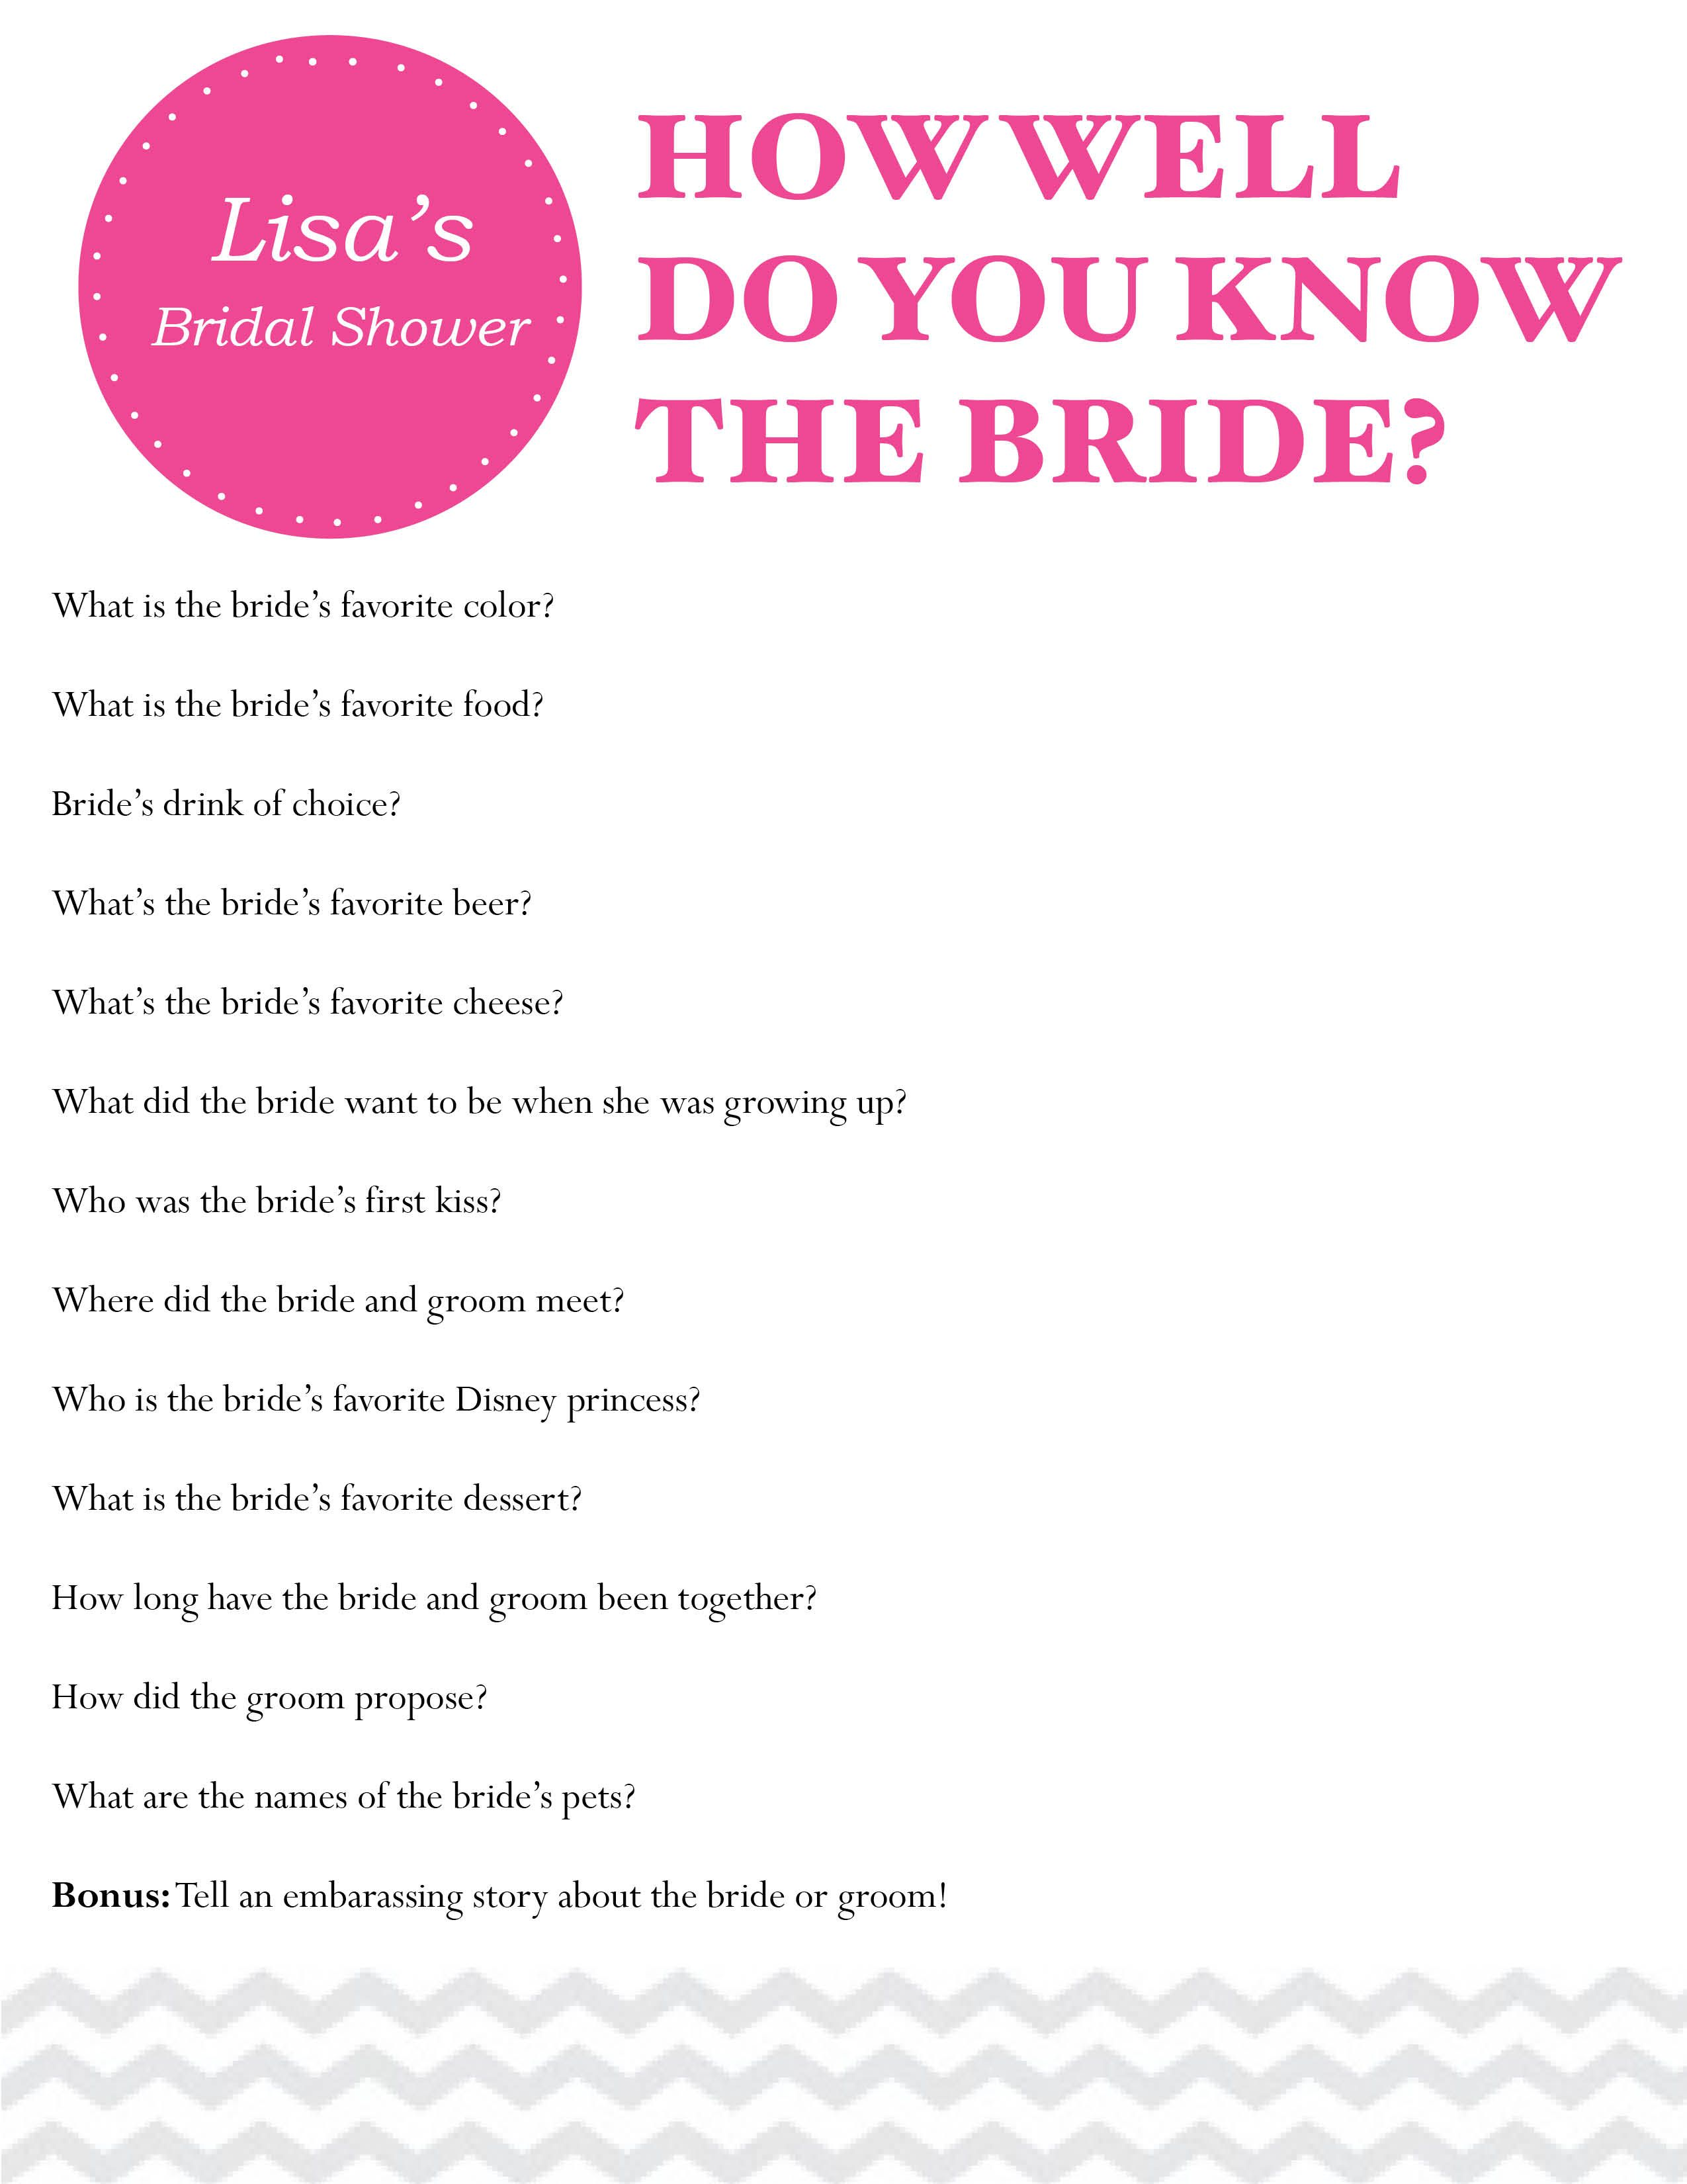 Questions To Ask A Bride At A Bridal Shower